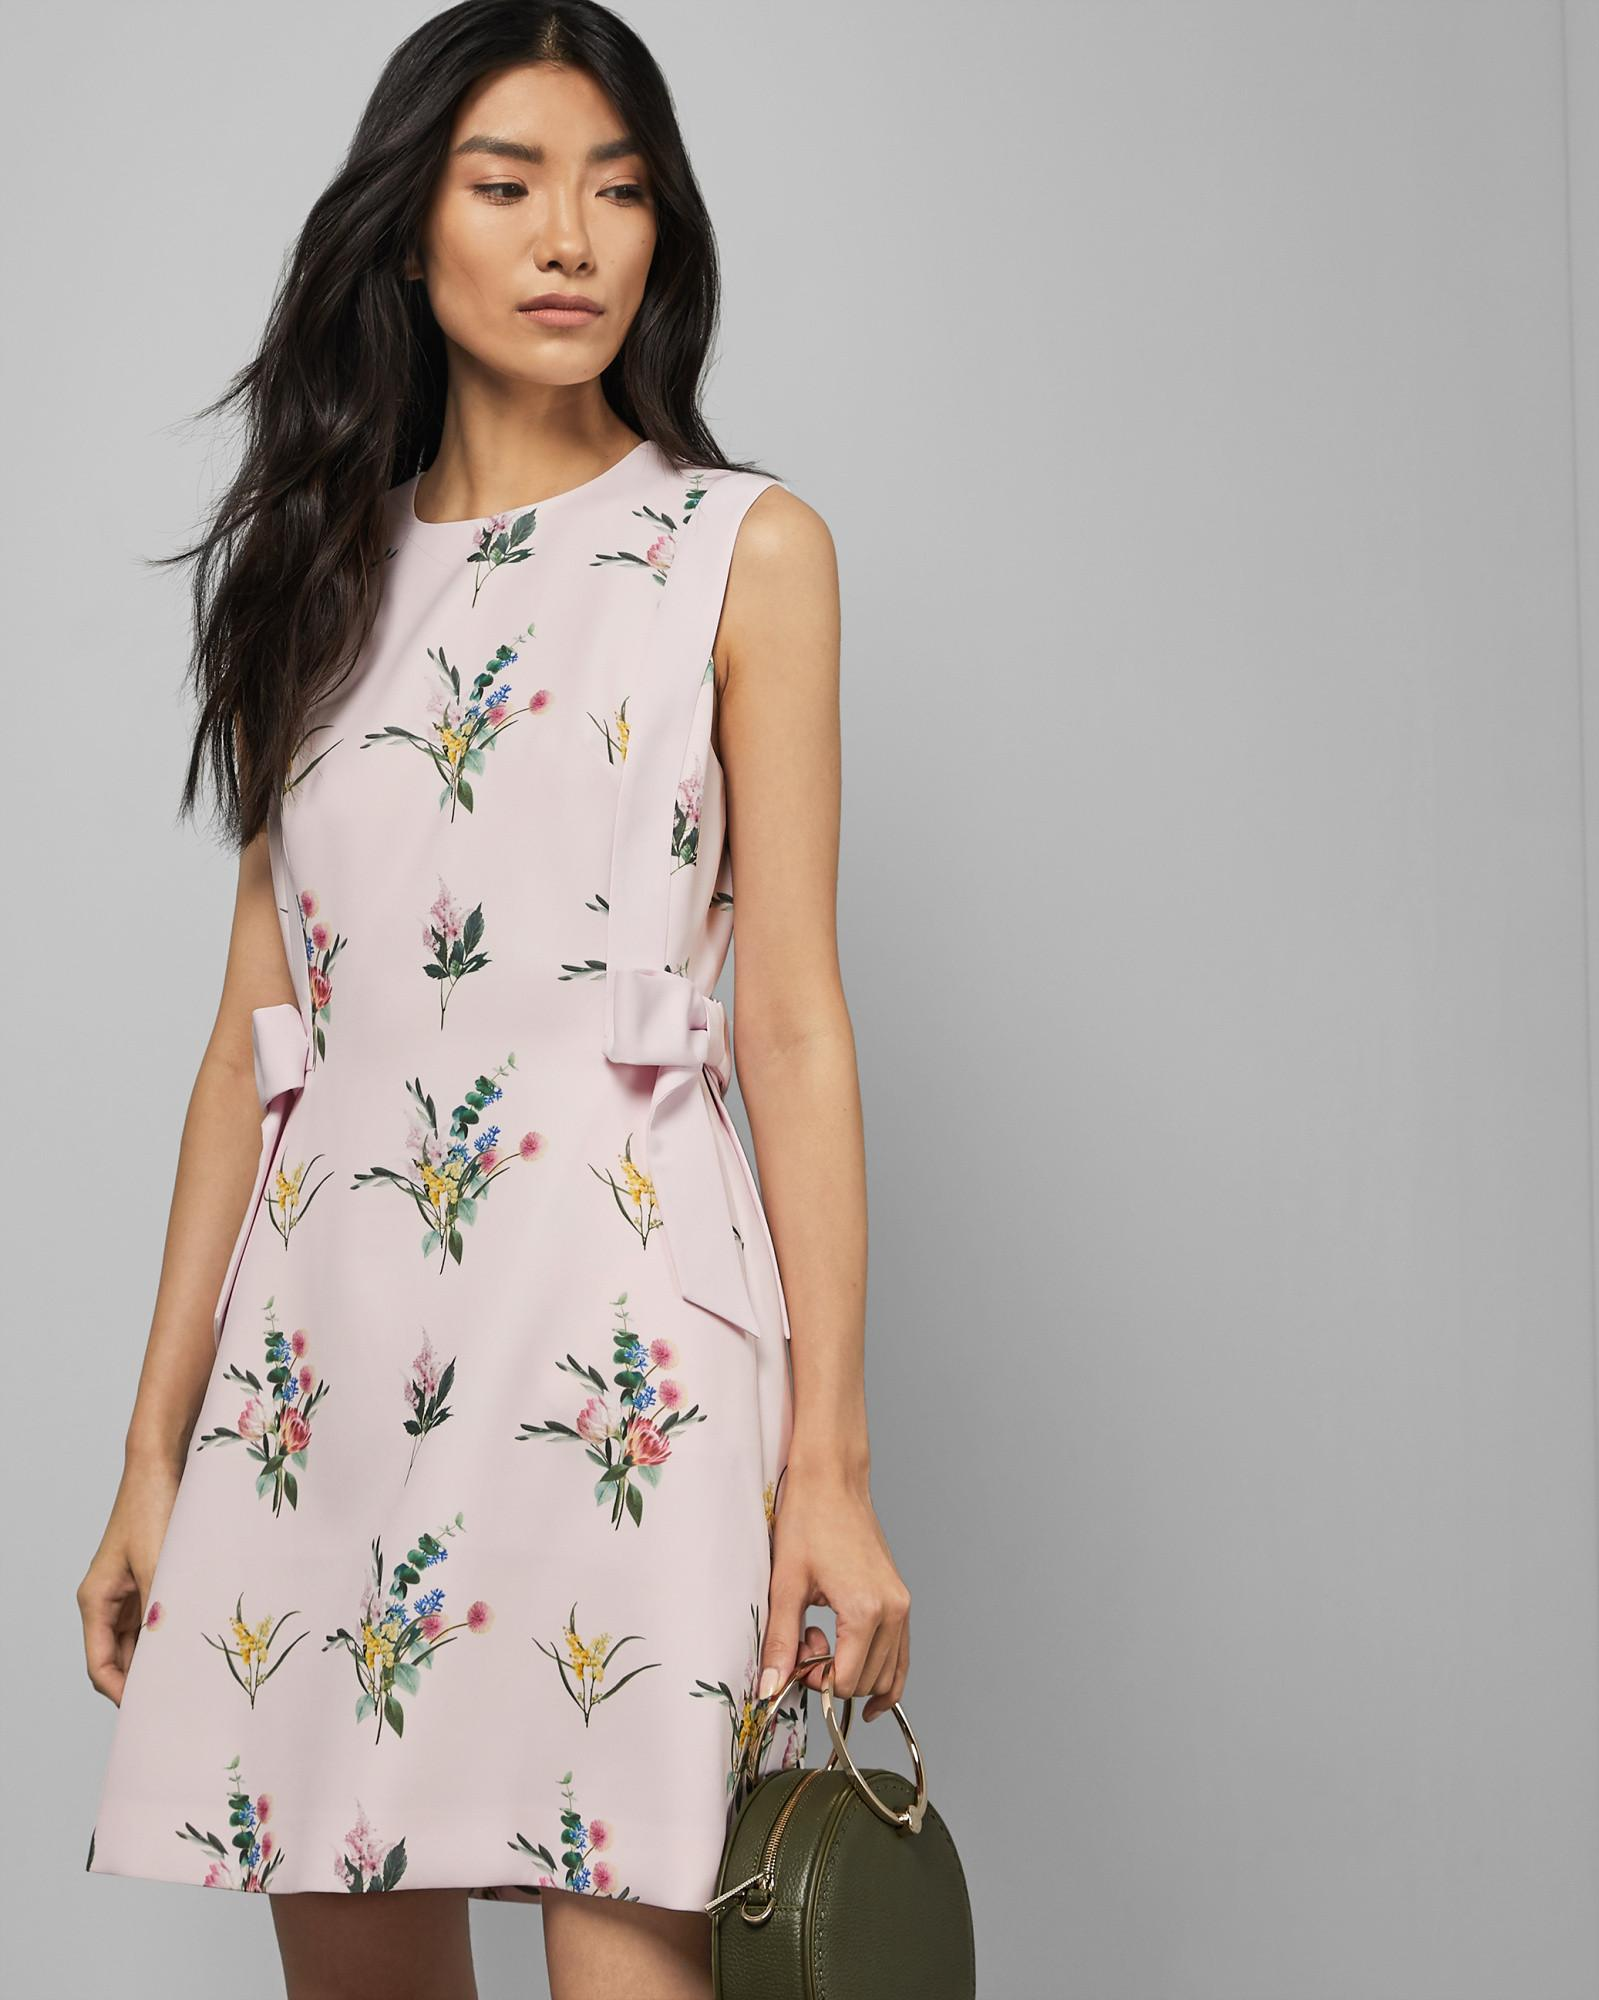 9fc2267c170a1 Lyst - Ted Baker Flourish A-line Dress in Pink